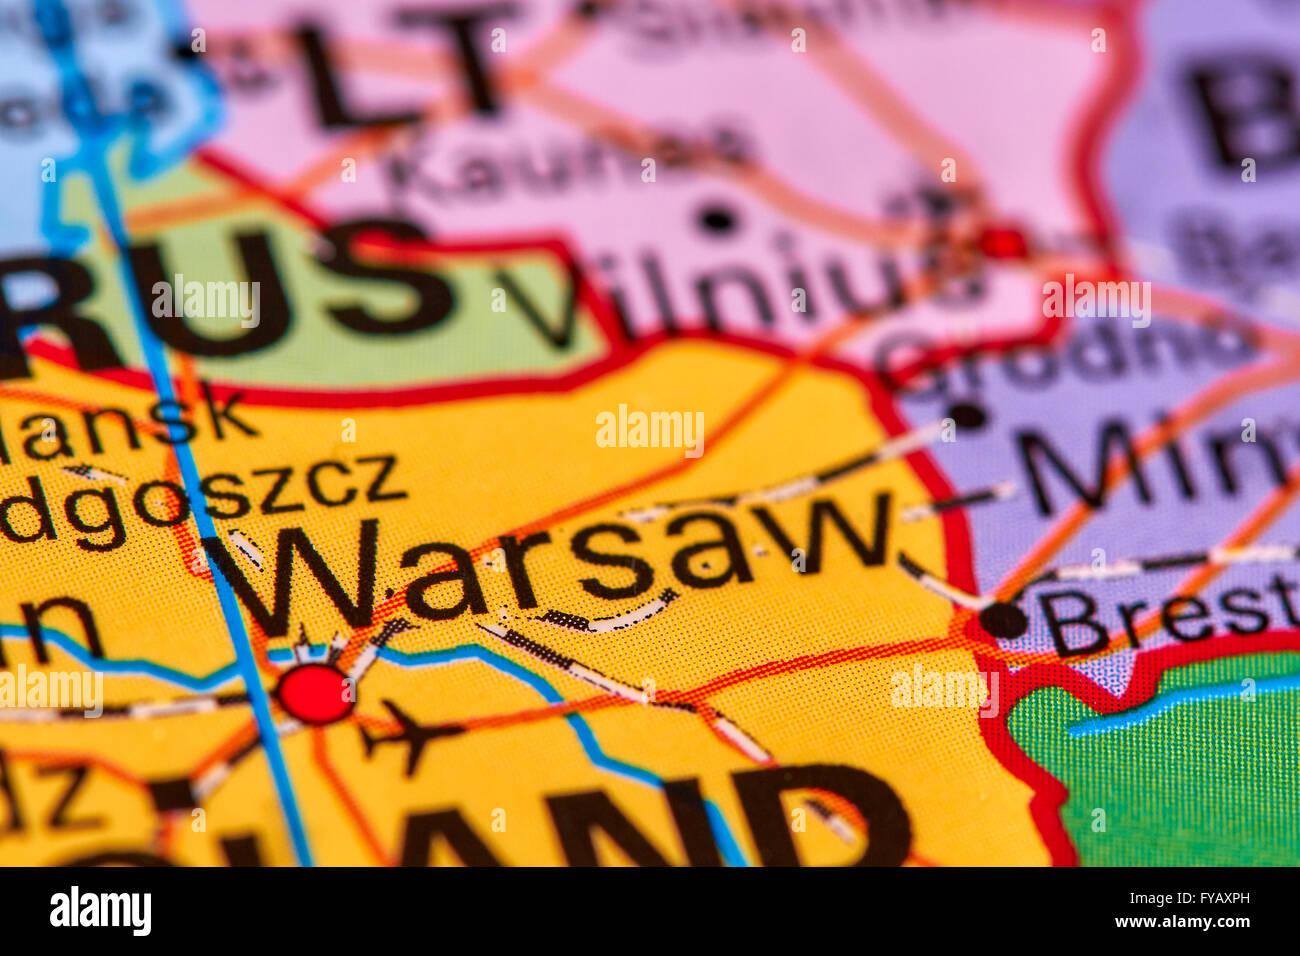 Capital Of Poland Map.Warsaw Capital City Of Poland On The World Map Stock Photo